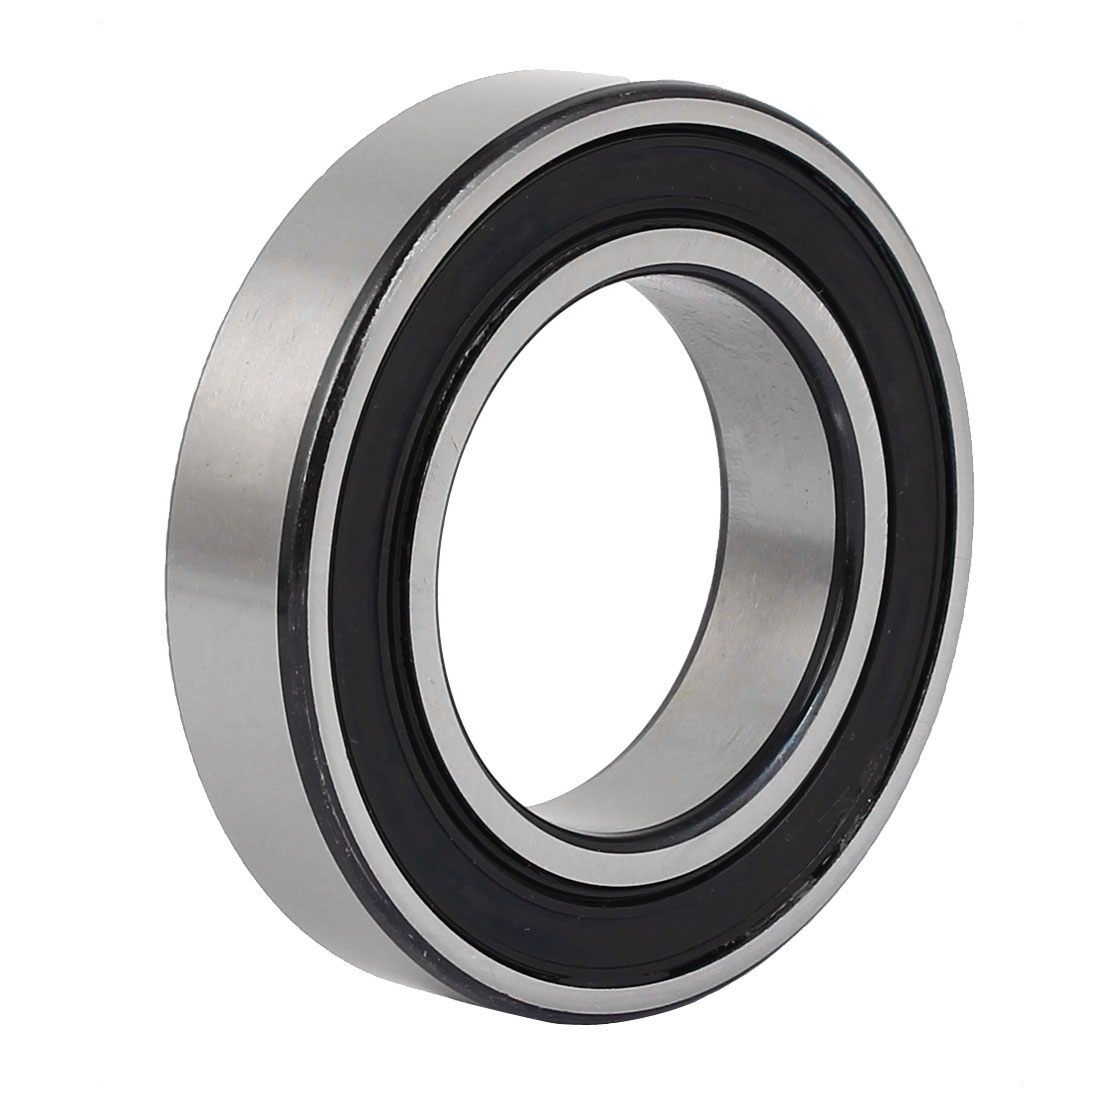 RZ6007 62mm x 35mm x 14mm Single Row Double Shielded Deep Groove Ball Bearing